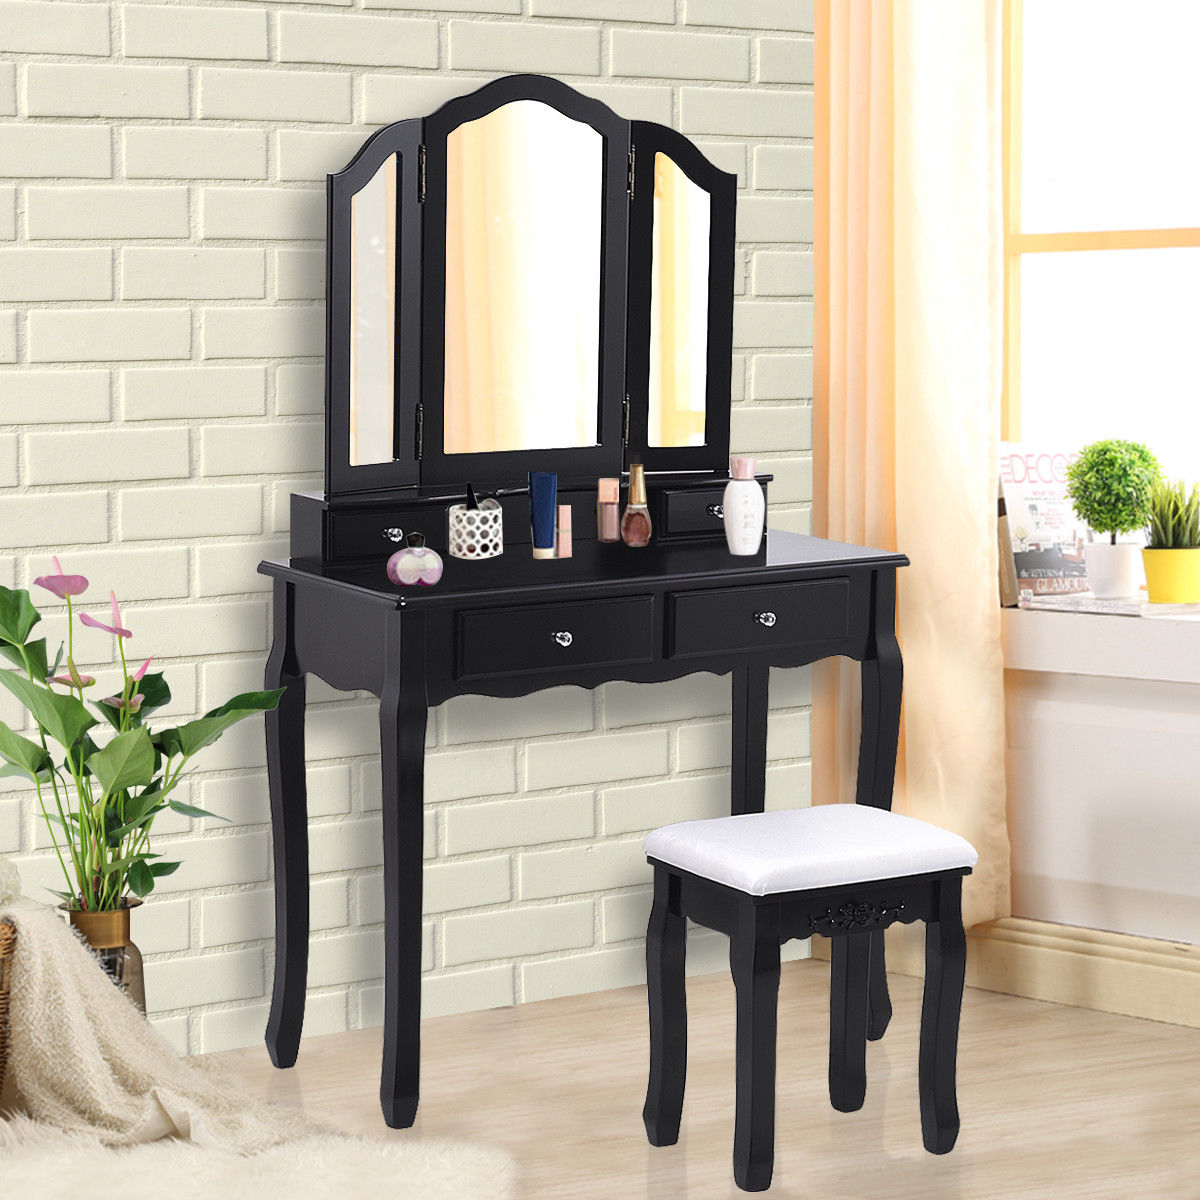 Vanity Makeup Dressing Table Stool Set